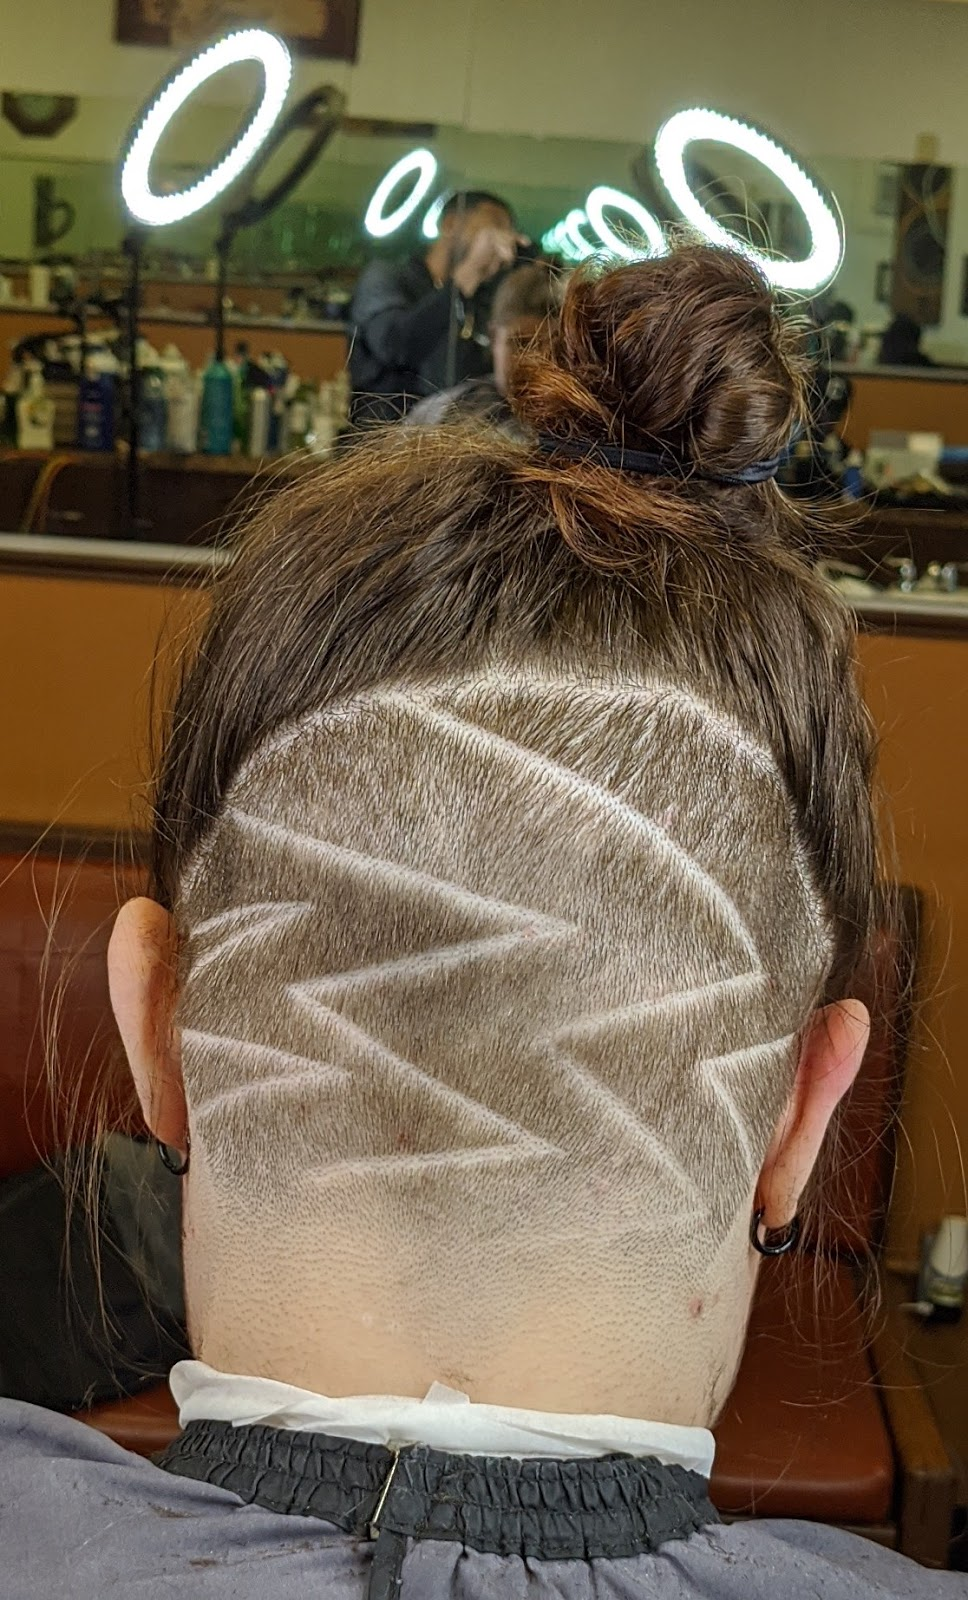 Masters Touch Barbershop LLC - hair care  | Photo 5 of 6 | Address: 31120 Vine St, Willowick, OH 44095, USA | Phone: (216) 298-3993